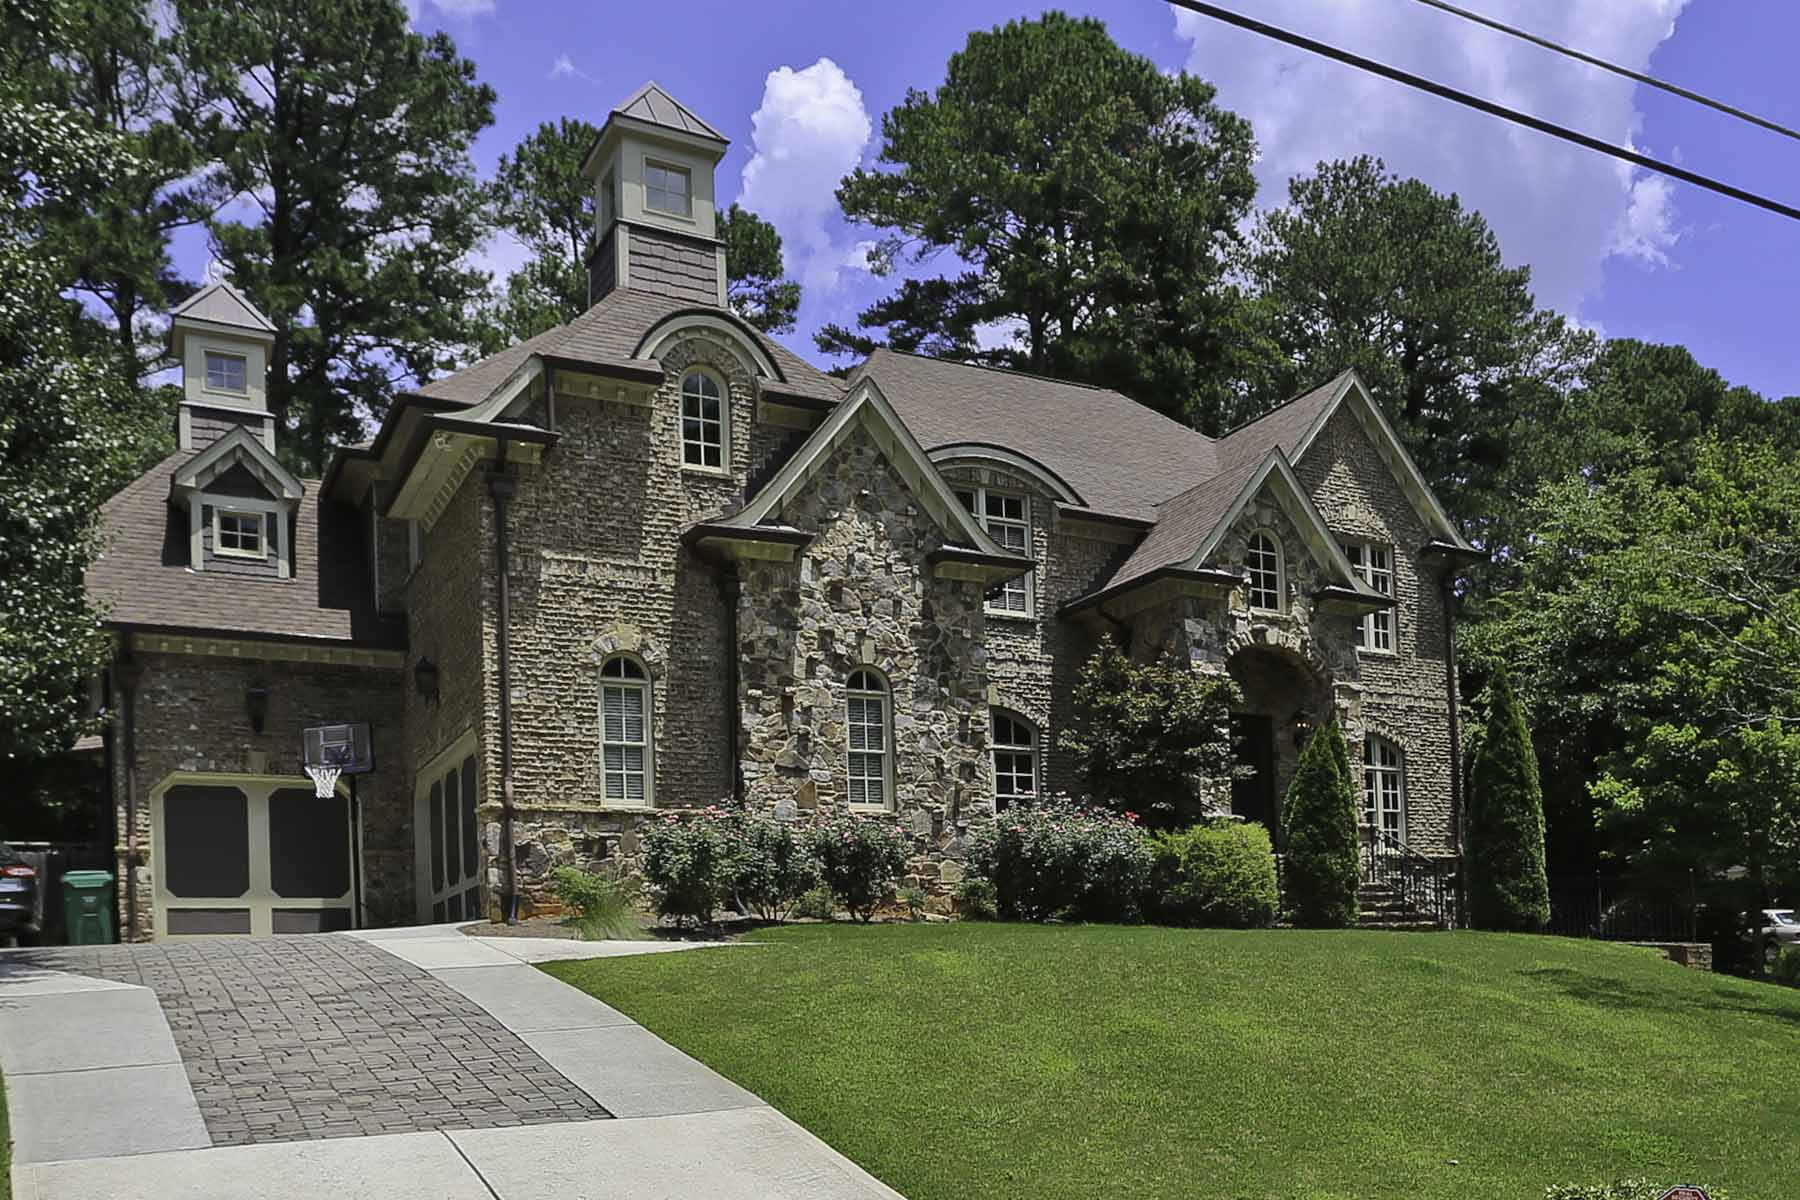 단독 가정 주택 용 임대 에 Executive Home with all the Bells and Whistles 3006 Lavista Court A Decatur, 조지아 30033 미국